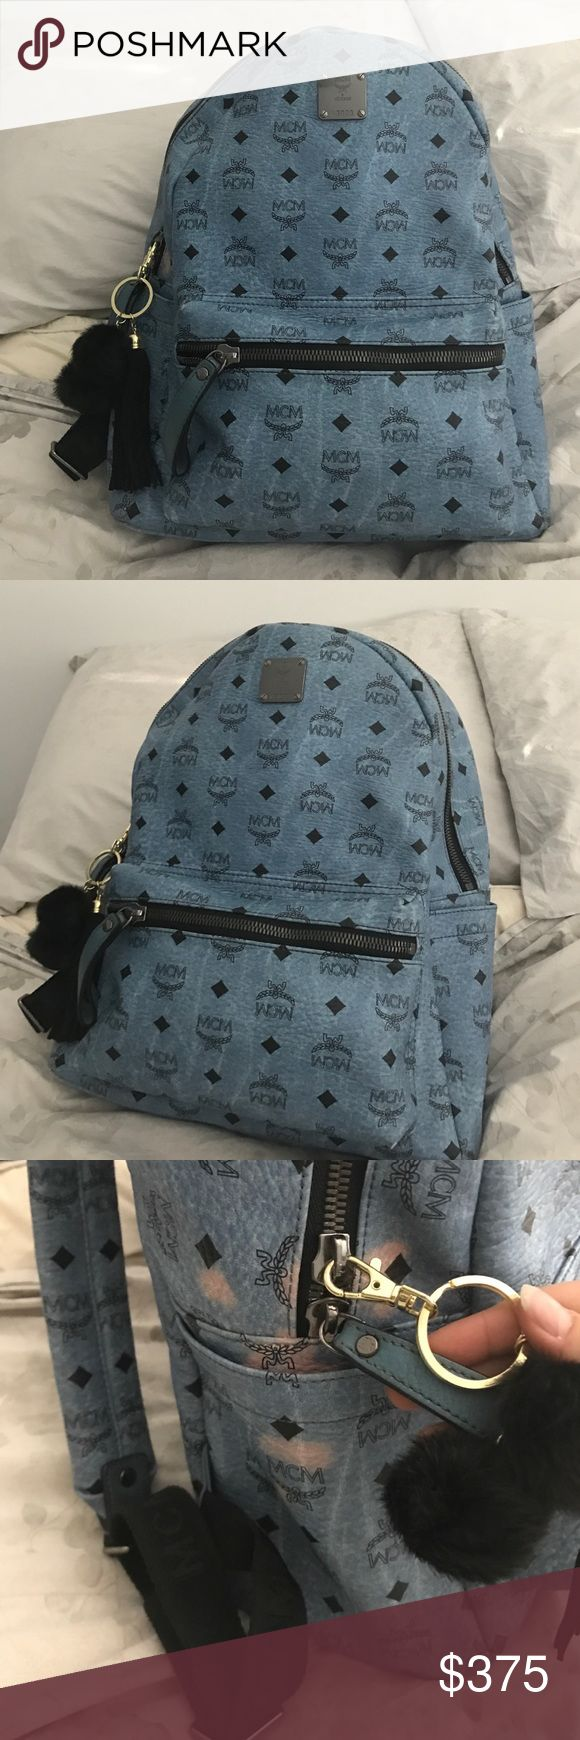 •PRICE FIRM• 100% AUTH LARGE $800 RETAIL  BACKPACK •PRICE FIRM• AUTH LIMITED EDITON LARGE $850 RETAIL  BACKPACK 🎒 UNISEX. LOWEST PRICE OUT THERE FOR A GUARANTEED AUTH MCM PURCHASED FROM GOODMAN IN NEW YORK. INSIDE IS FLAWLESS LIKE NEW, CORNERS HAVE NO PIPING SHOWING BUT LIGHT WEAR, THE MAJOR FLAWS ARE AS SHOWN IN PICTURE ARE HIGHLY REFLECTED IN PRICE BUT THE FREE CHARM THAT IS INCLUDED WITH PURCHASE COVERS THEM WHEN WEARING SO YOU CANT SEE. ZIPPER PULL REPLACED WITH PUFF CHARM I DONT HAVE…